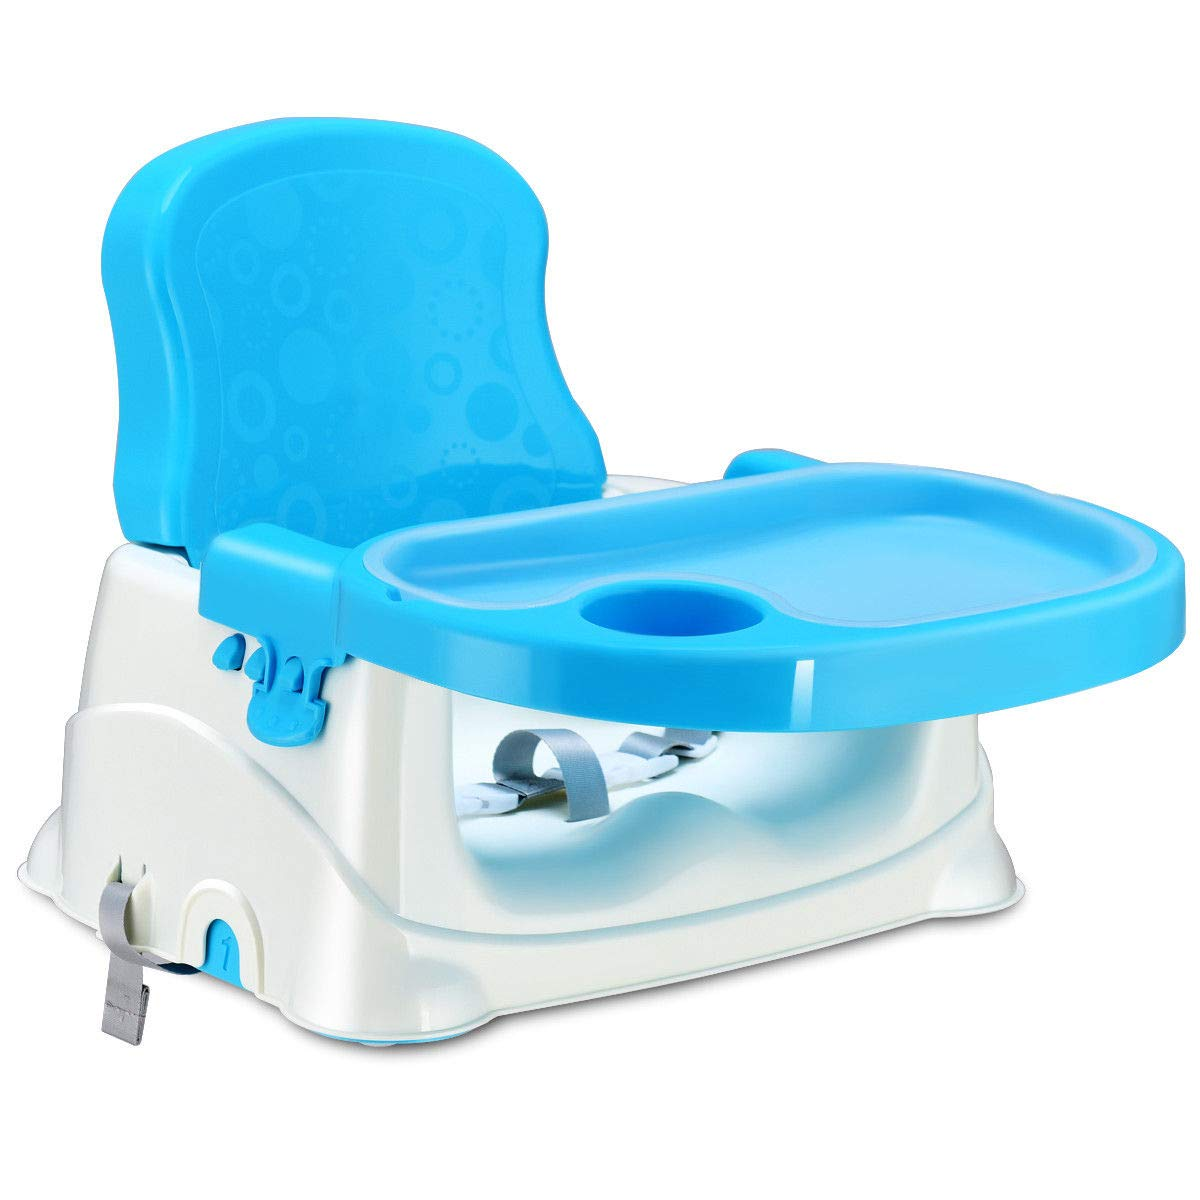 Costzon 2 in 1 Chair Booster Seat for Baby Infant, Portable Adjustable W/Tray Cup Holder Safety Belt, Toddler Feeding Floor Seat (Blue)